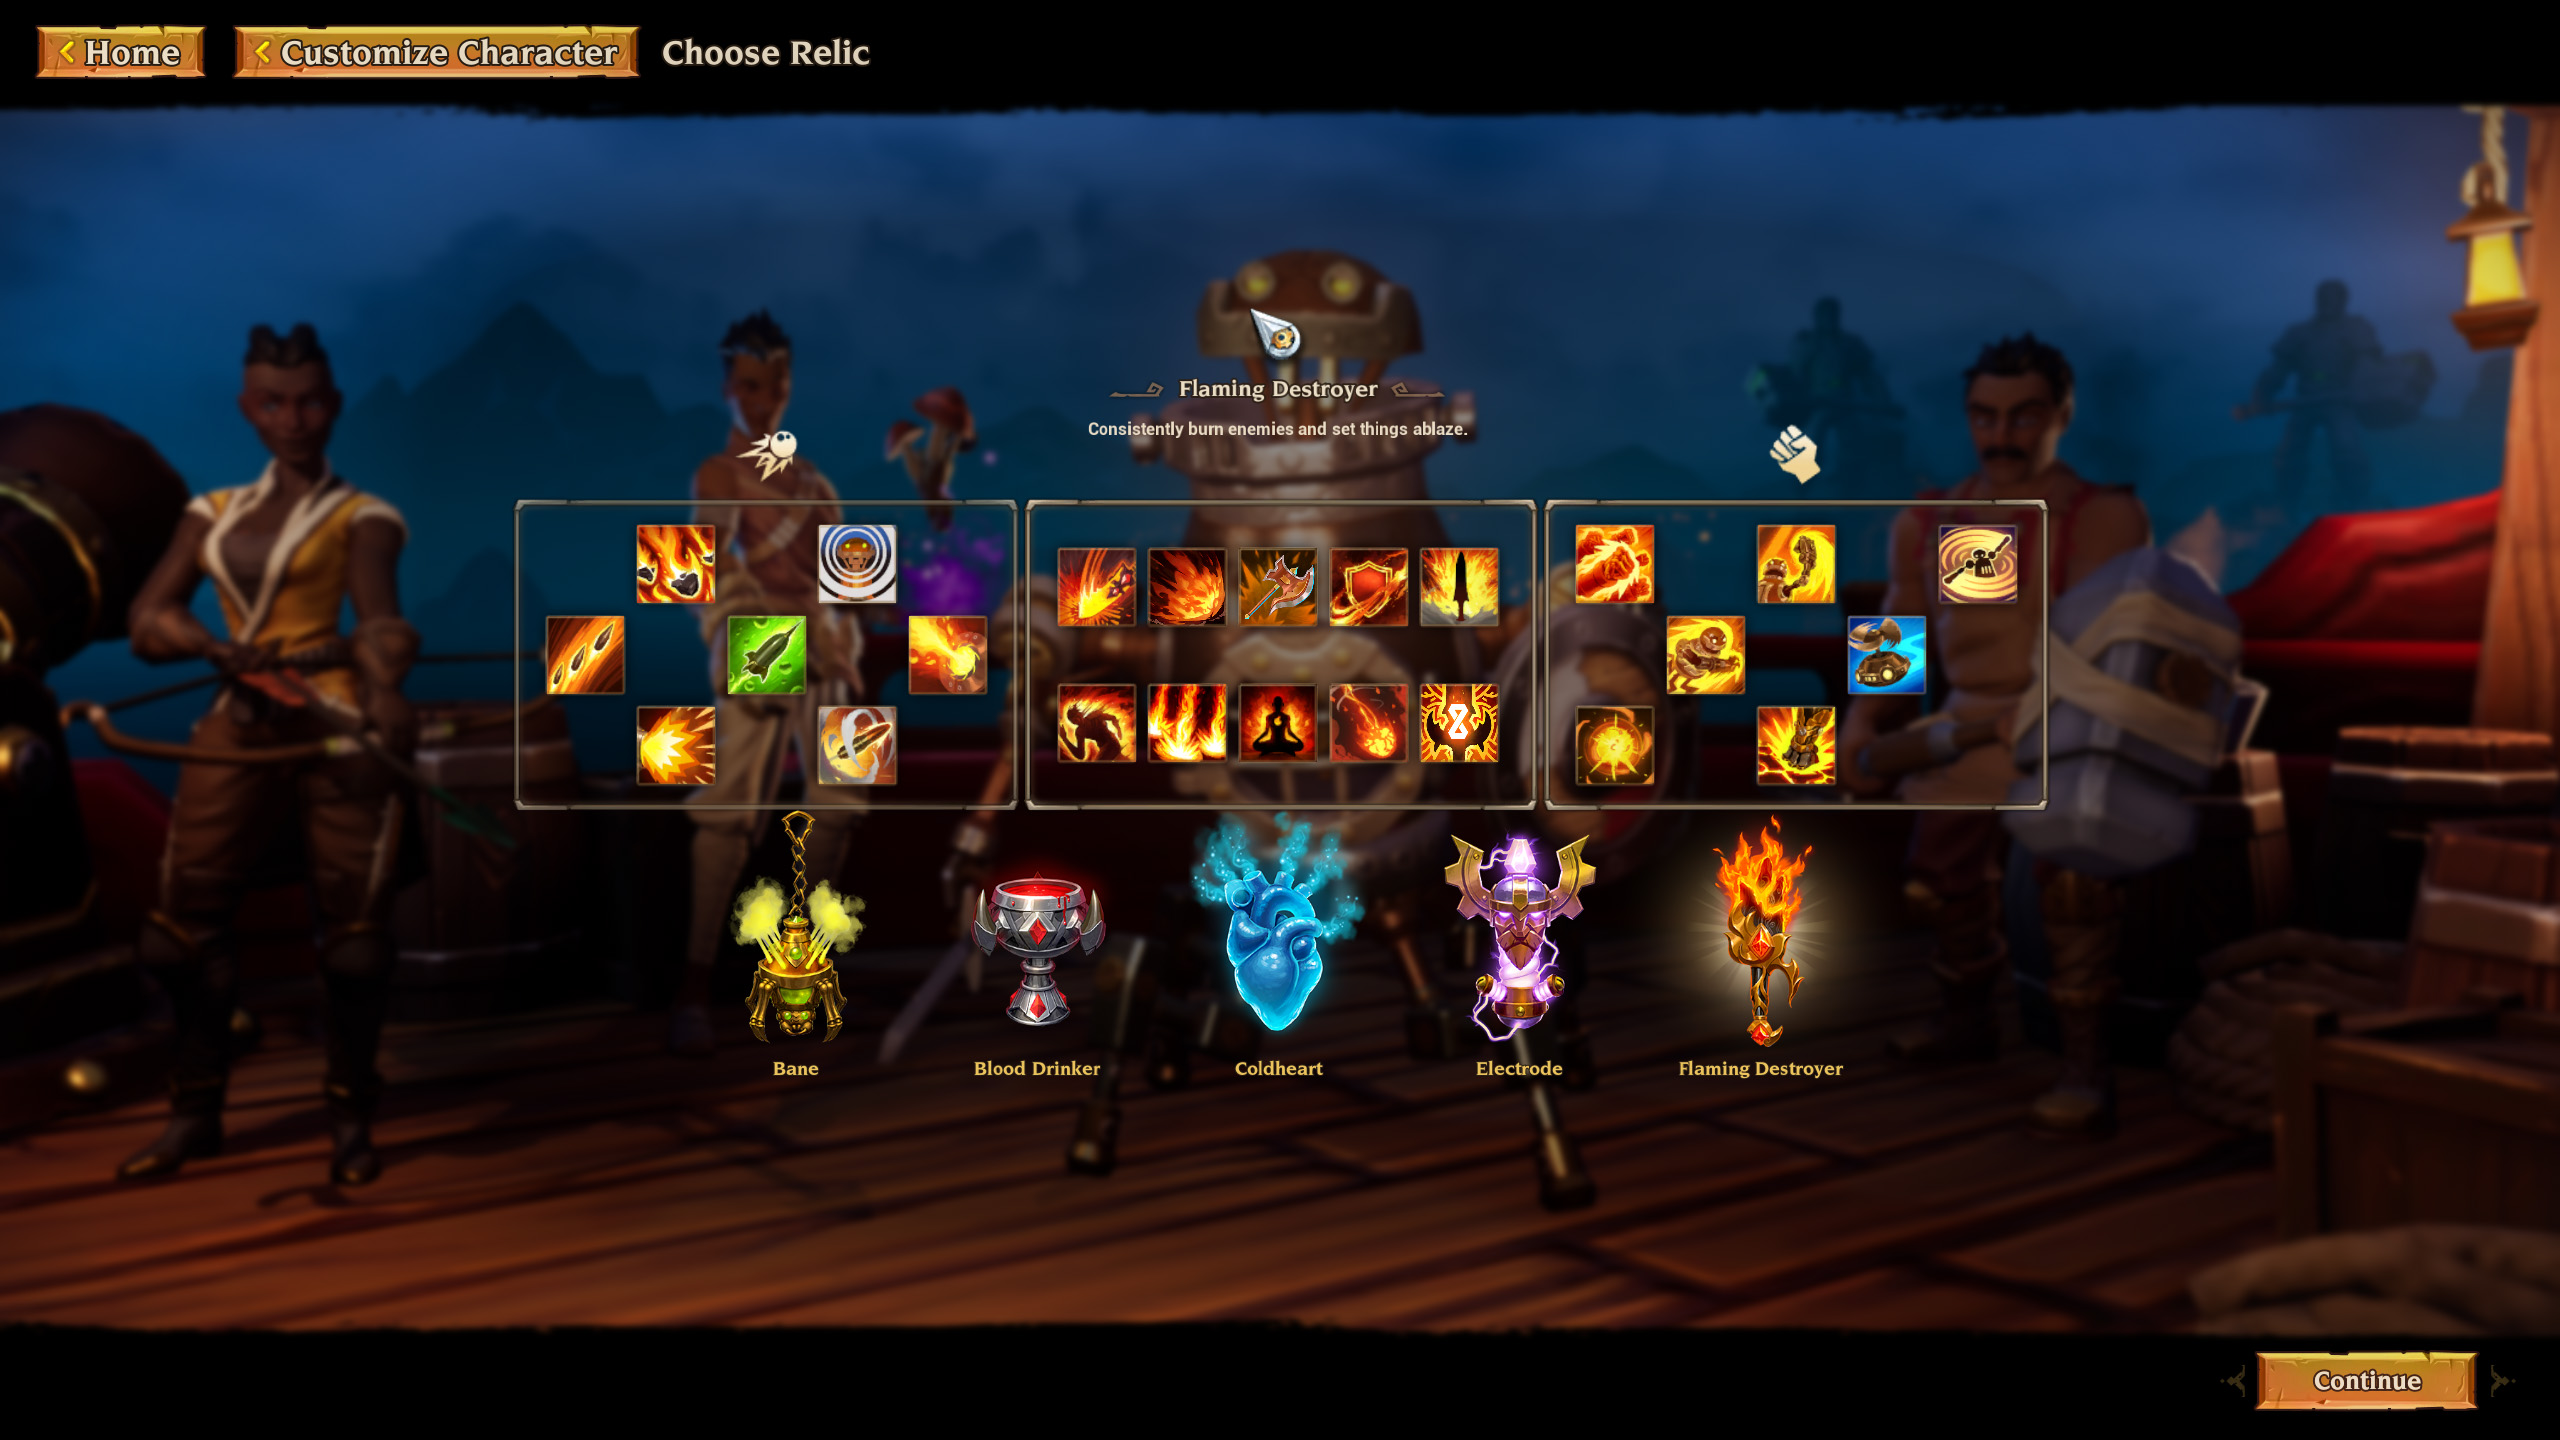 Torchlight 3 pick relic Flaming Destroyer